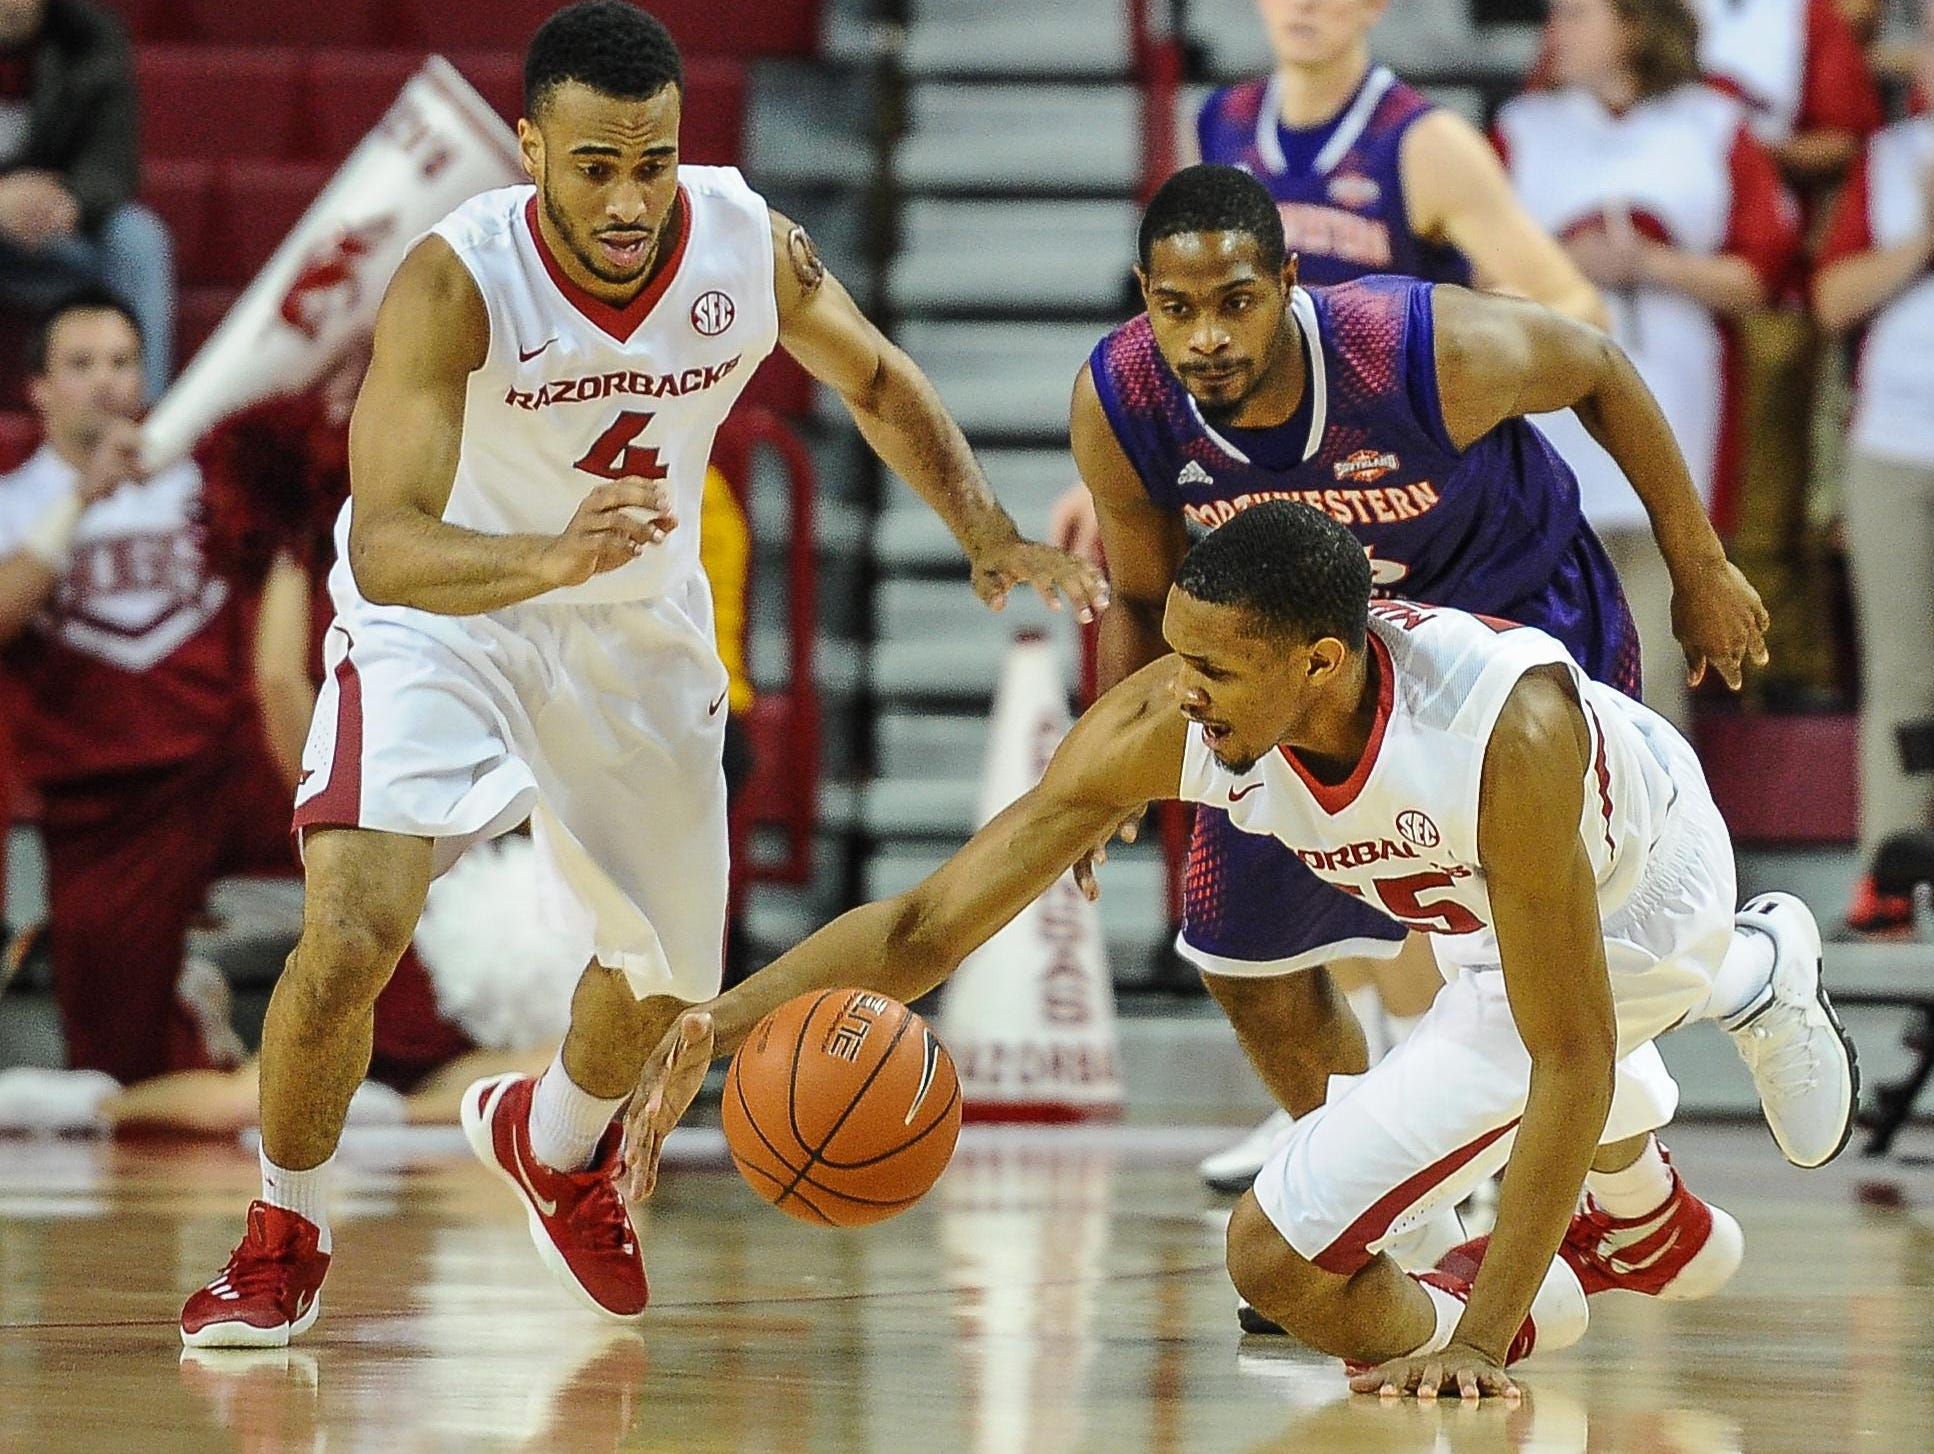 Arkansas forward Keaton Miles (55) dives for a loose ball during a game between Arkansas and Northwestern State on Tuesday.